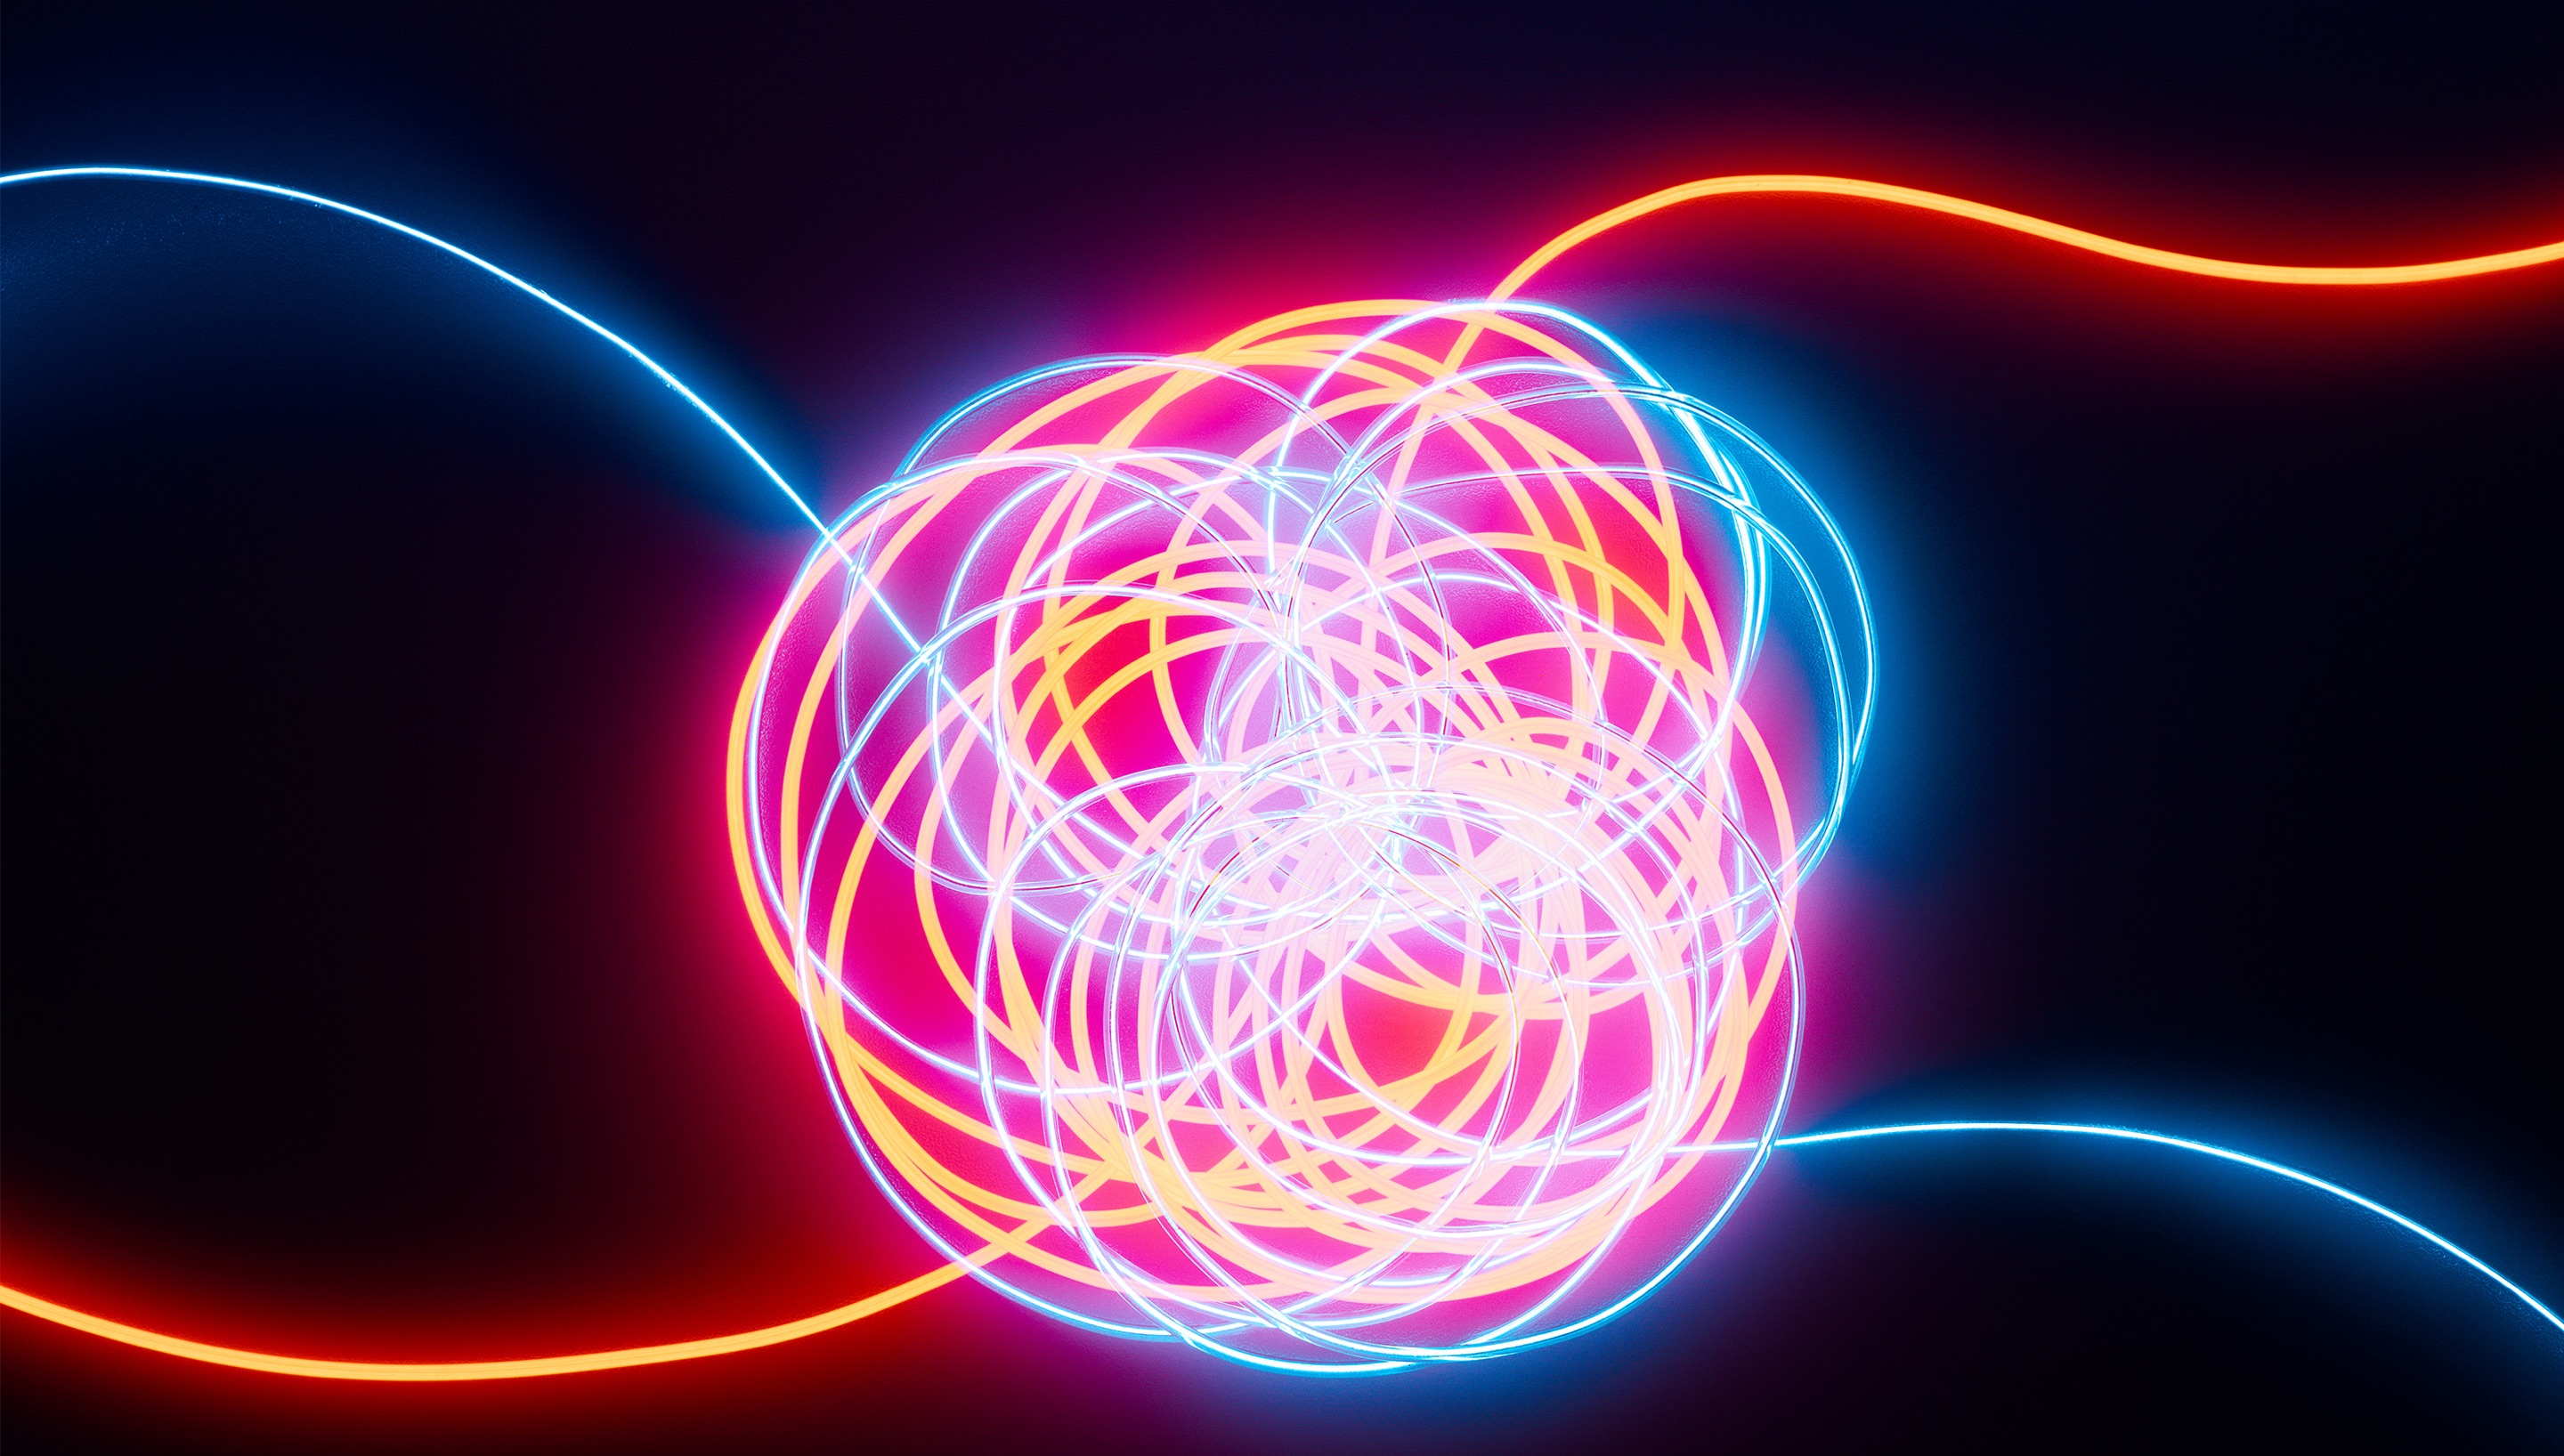 a photo of interconnected wires glowing with activity